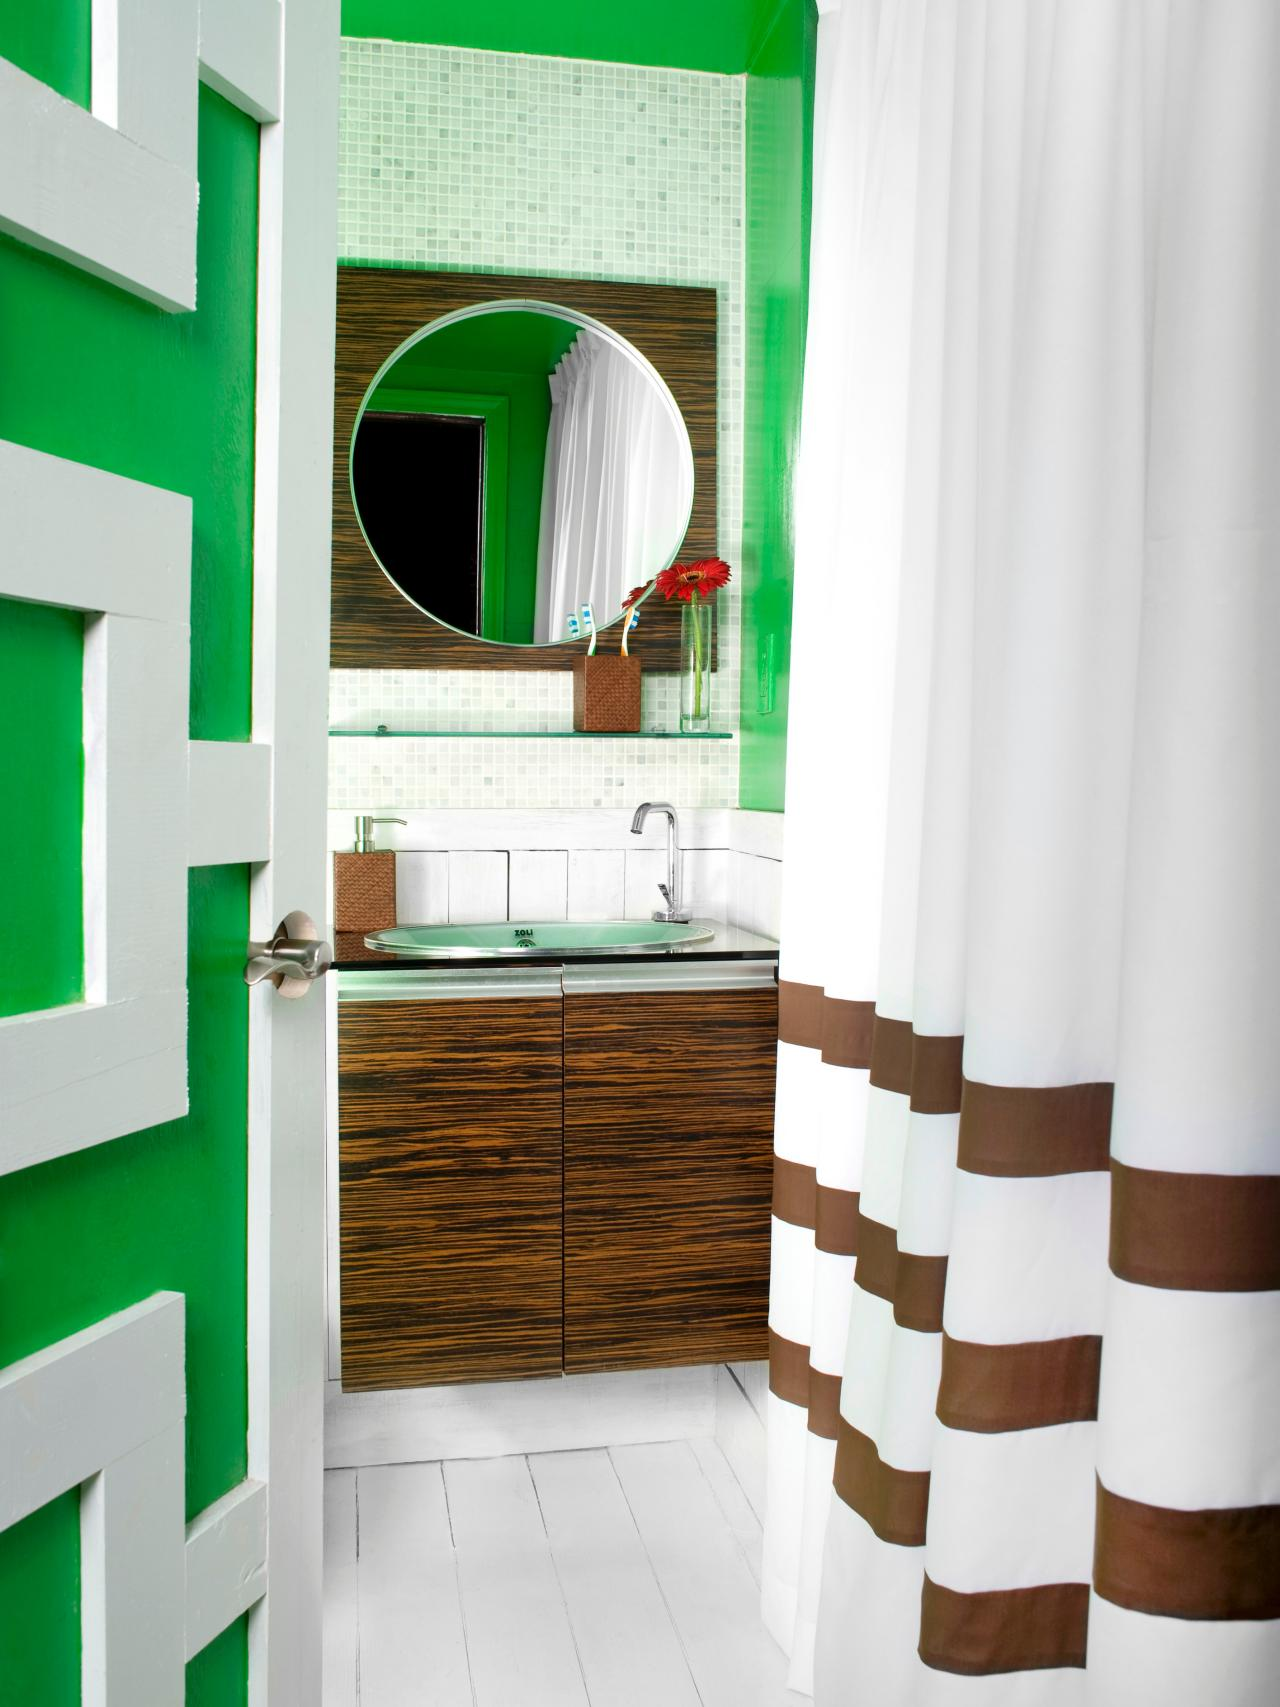 Green bathroom paint ideas - Bathroom Color And Paint Ideas